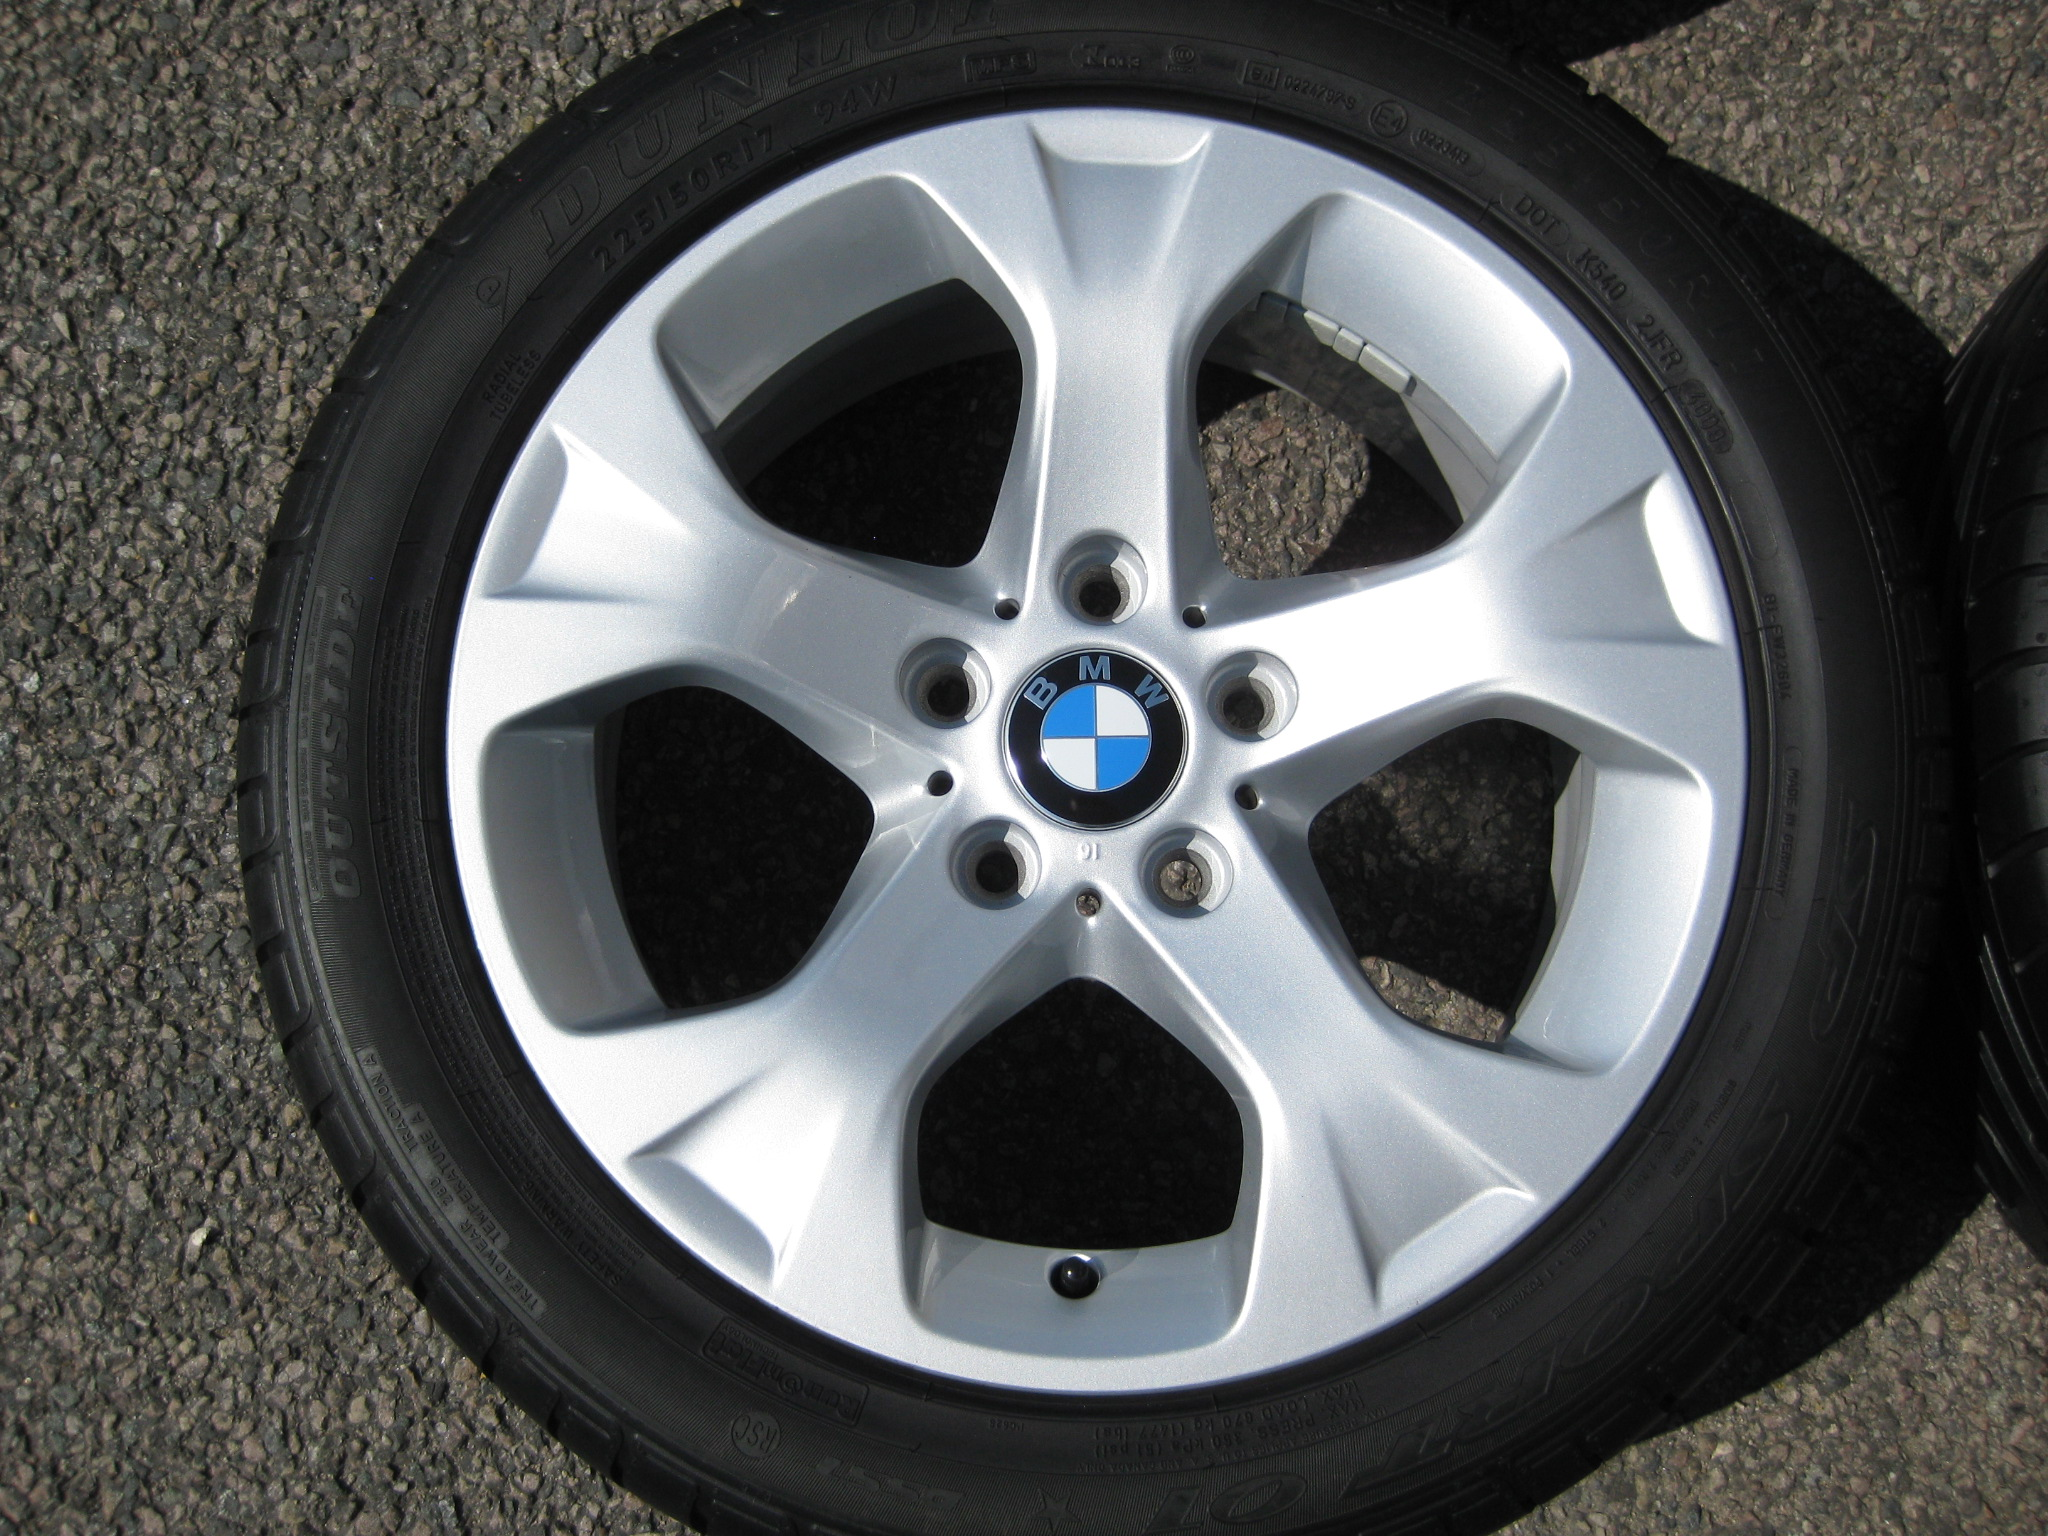 "USED 17"" GENUINE BMW STYLE 317 5 SPOKE ALLOY WHEELS, FULLY REFURBED INC VERY GOOD DUNLOP RUNFLAT TYRES"